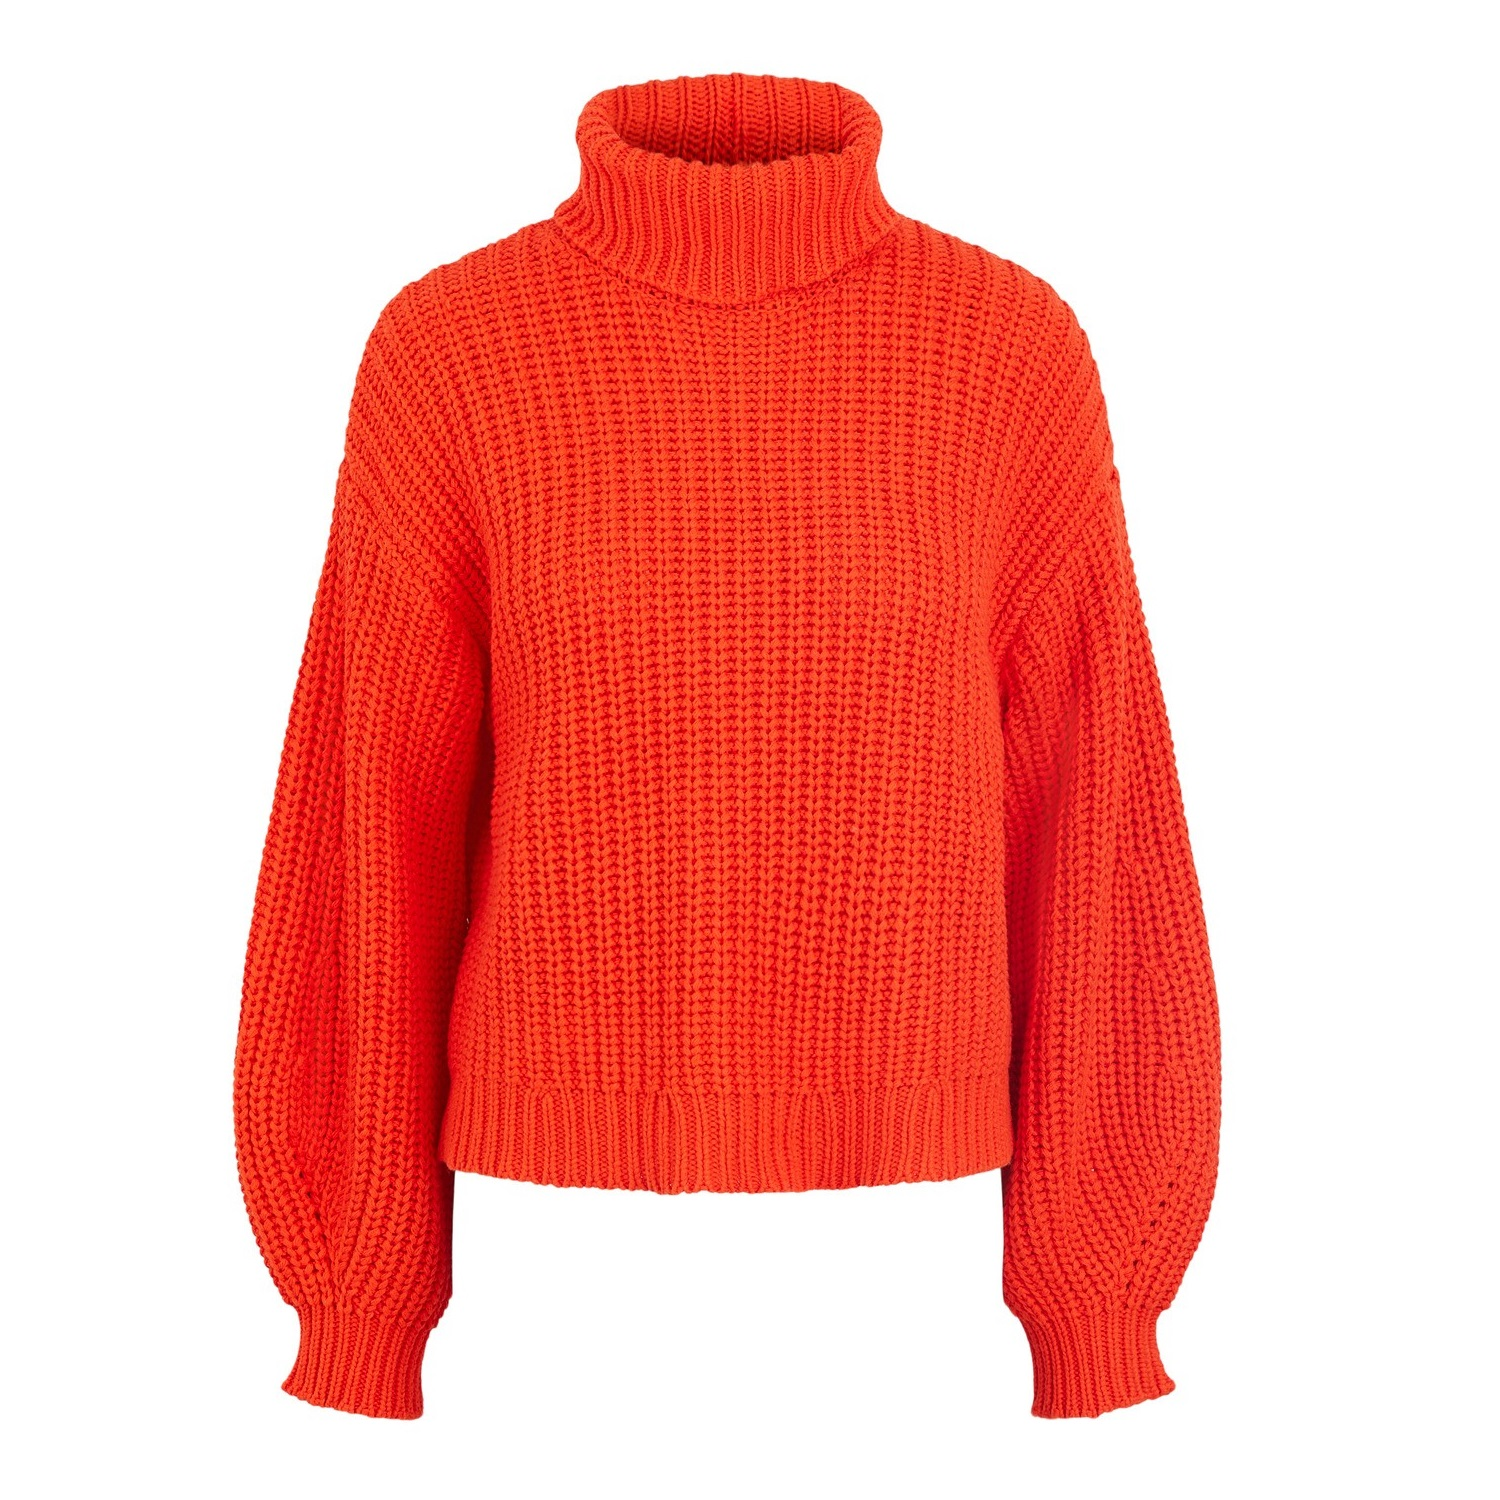 SALE Orangina Knit Roll Neck Jumper was  £45.00